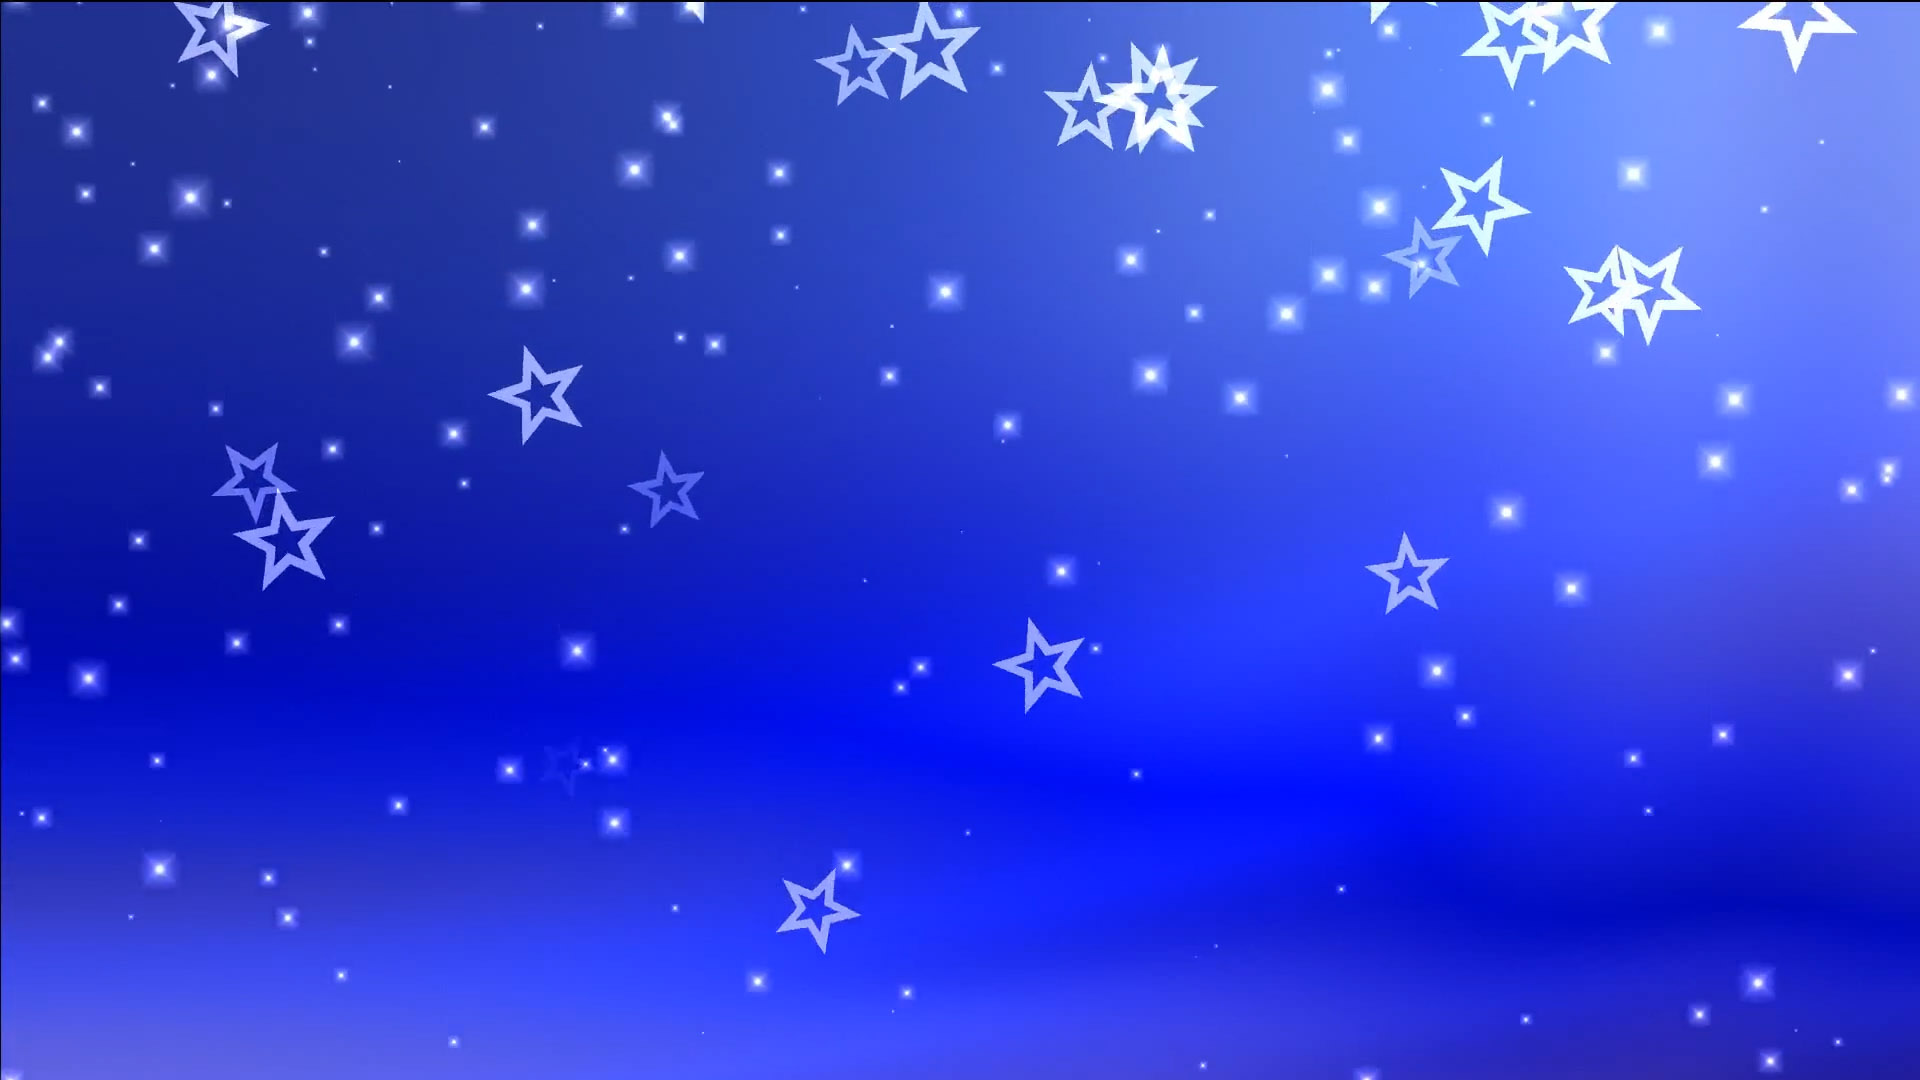 Classic Christmas Motion Background Animation Perfecty: Buy Animated Falling ☆ Stars & Particles Video On Blue